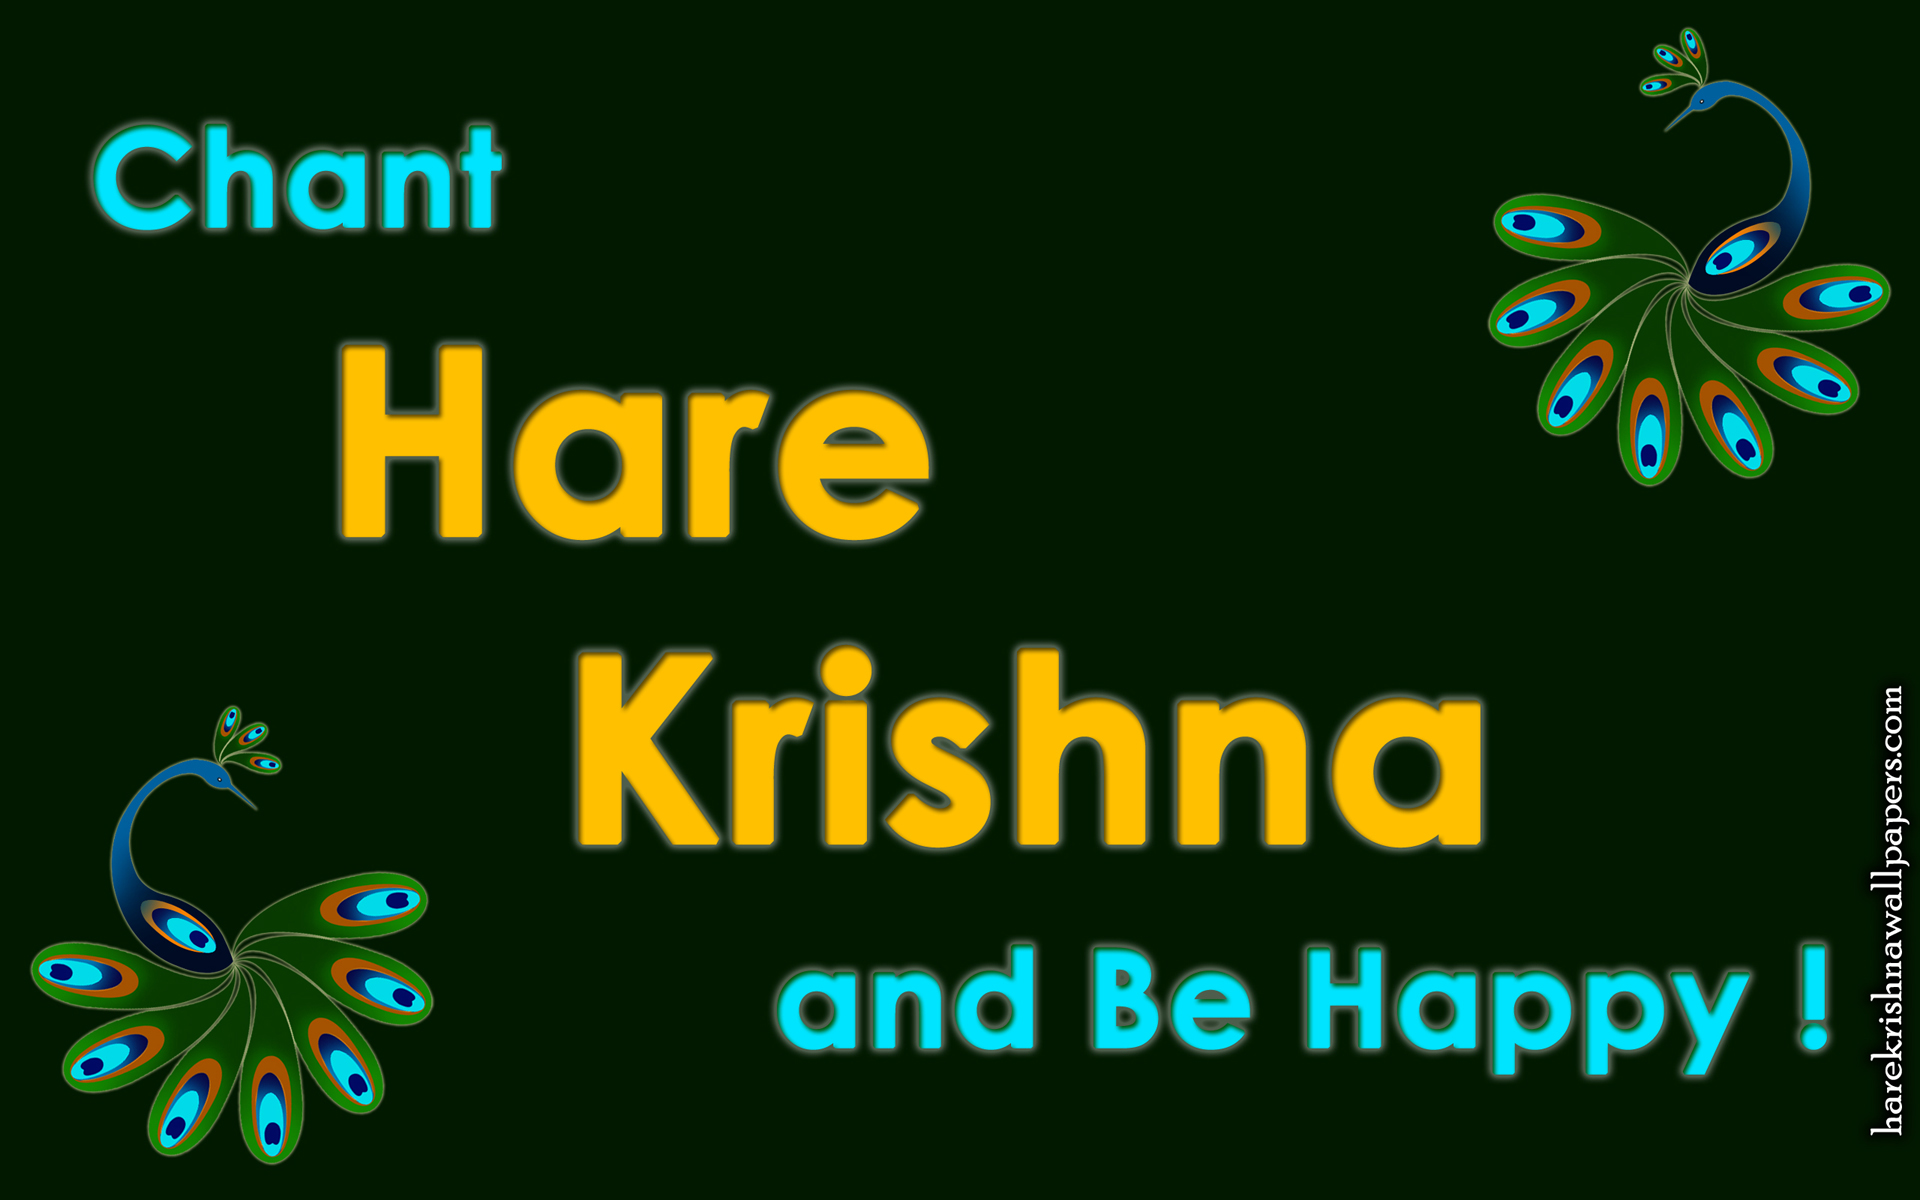 Chant Hare Krishna and be happy Wallpaper (006) Size 1920x1200 Download